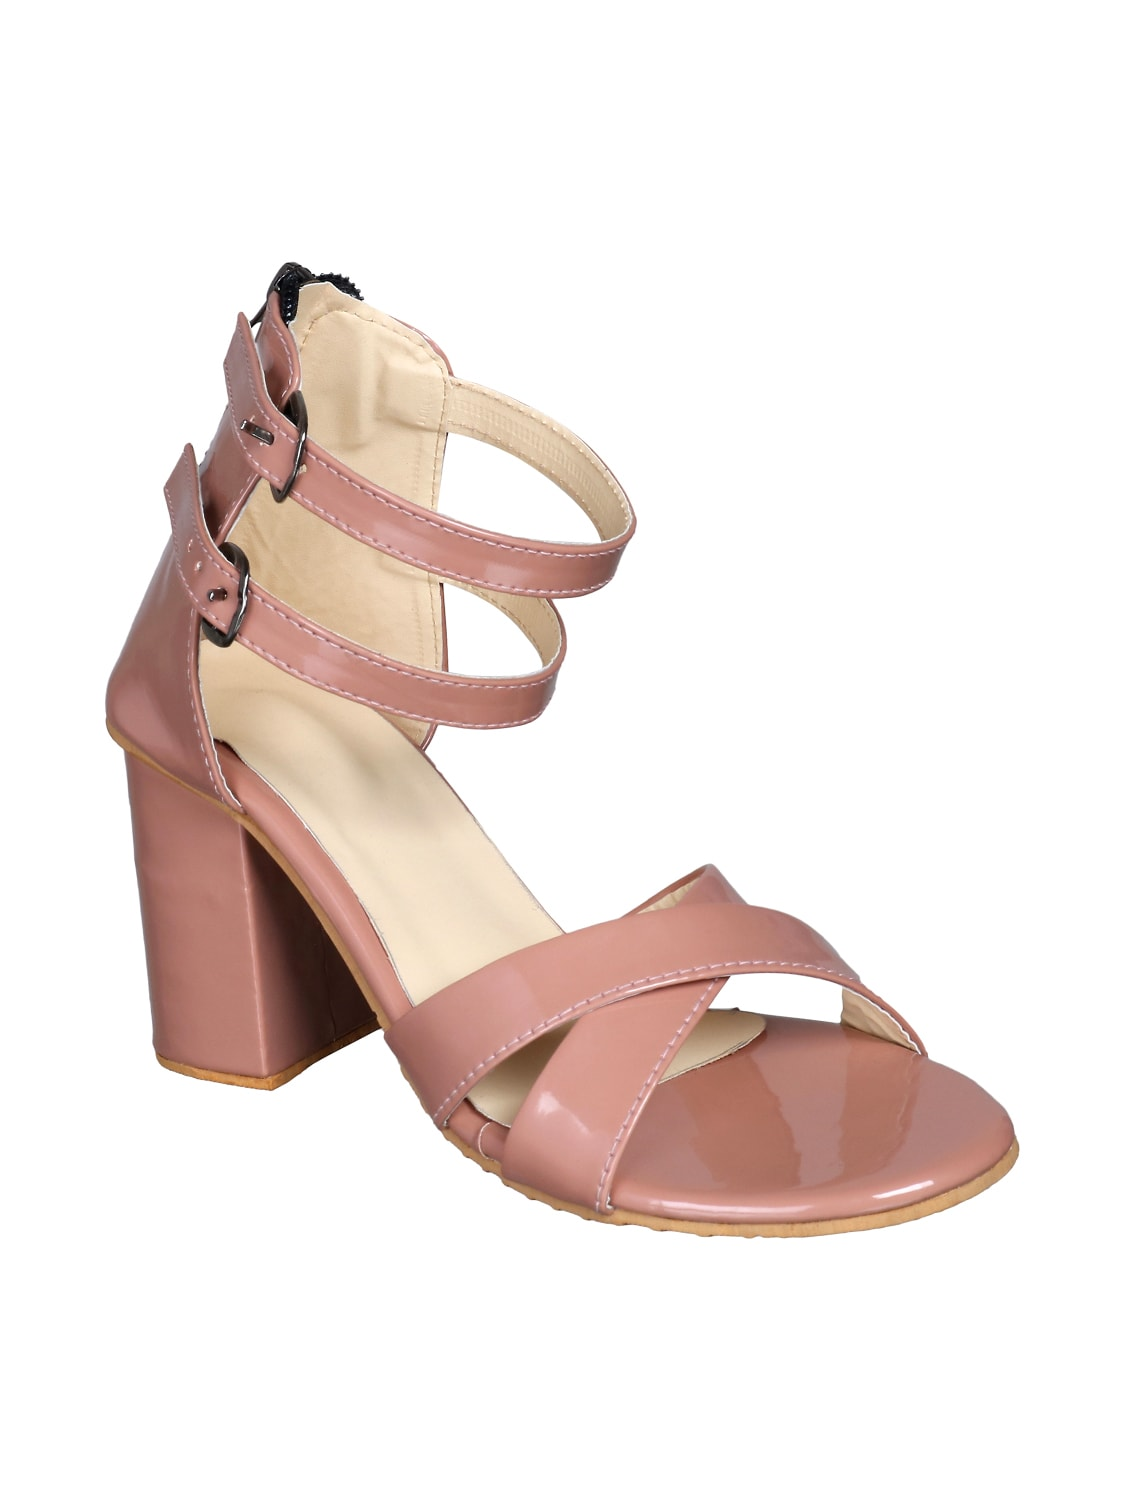 471cb8c689906 Buy Pink Patent Leather Closed Back Sandals by Lancy - Online ...